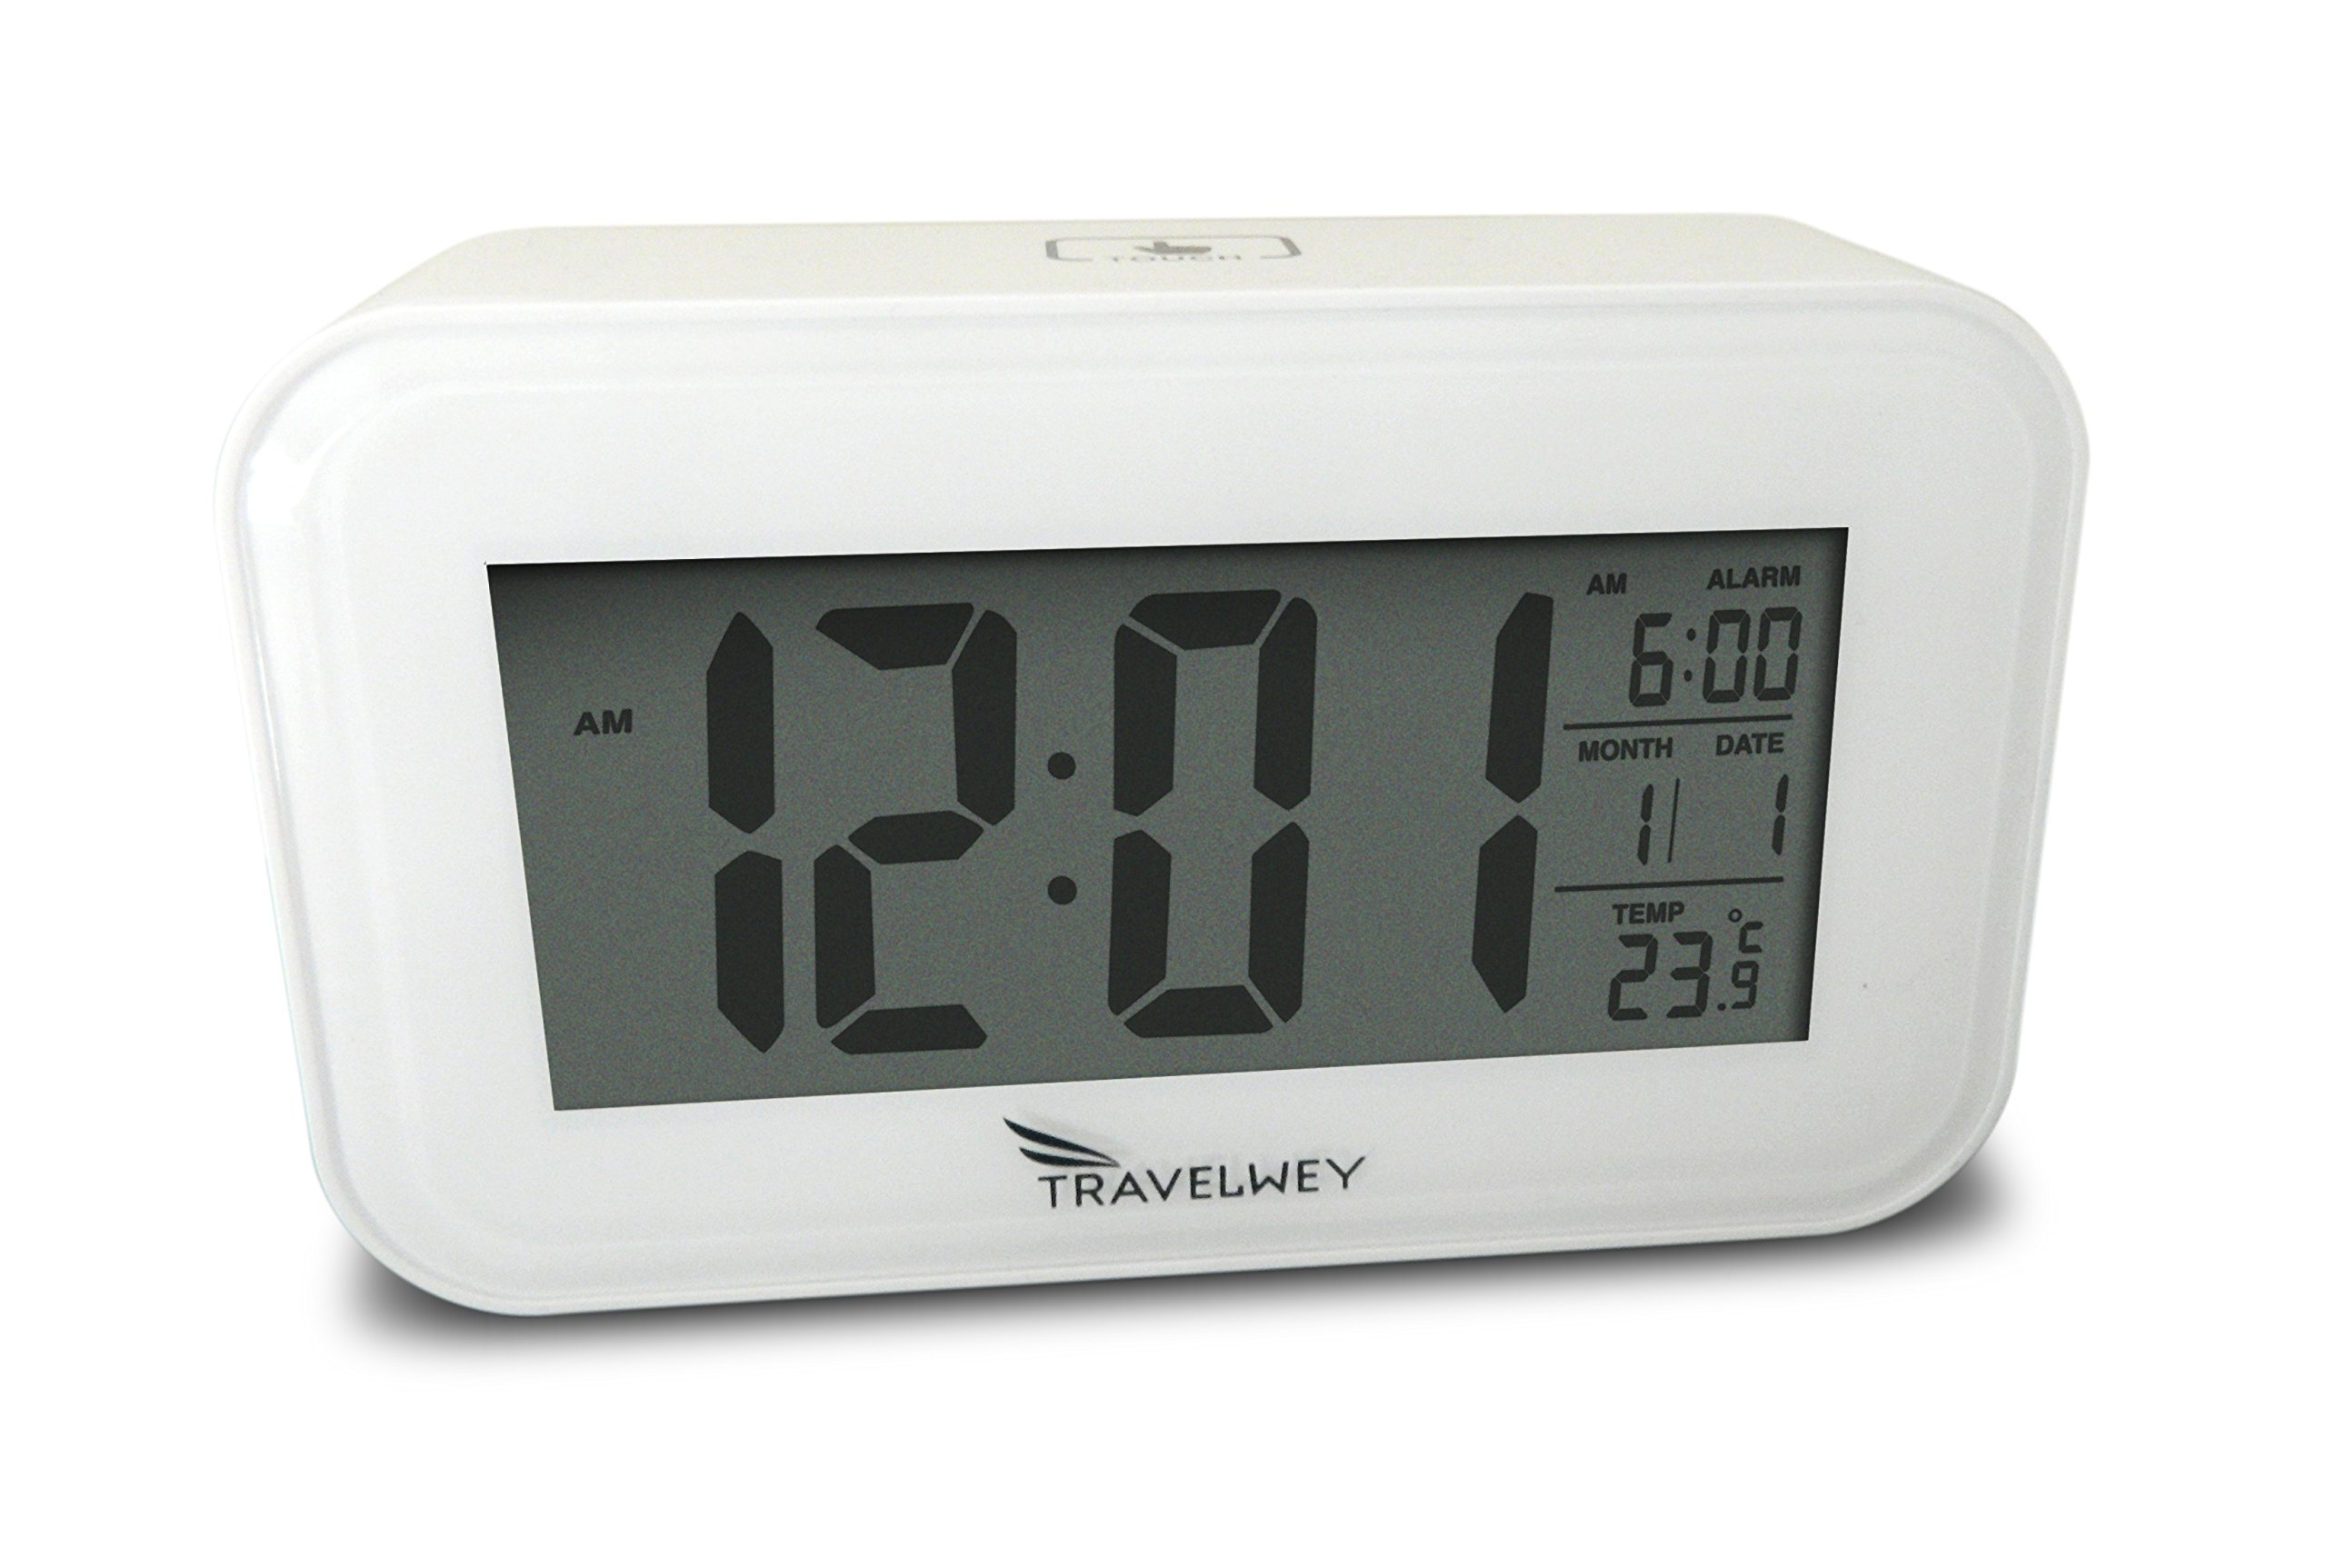 Night-Time Digital Alarm Clock for Bedrooms, Visible at Night, Snooze, Temperature, Date, Two USB Charging Ports, White